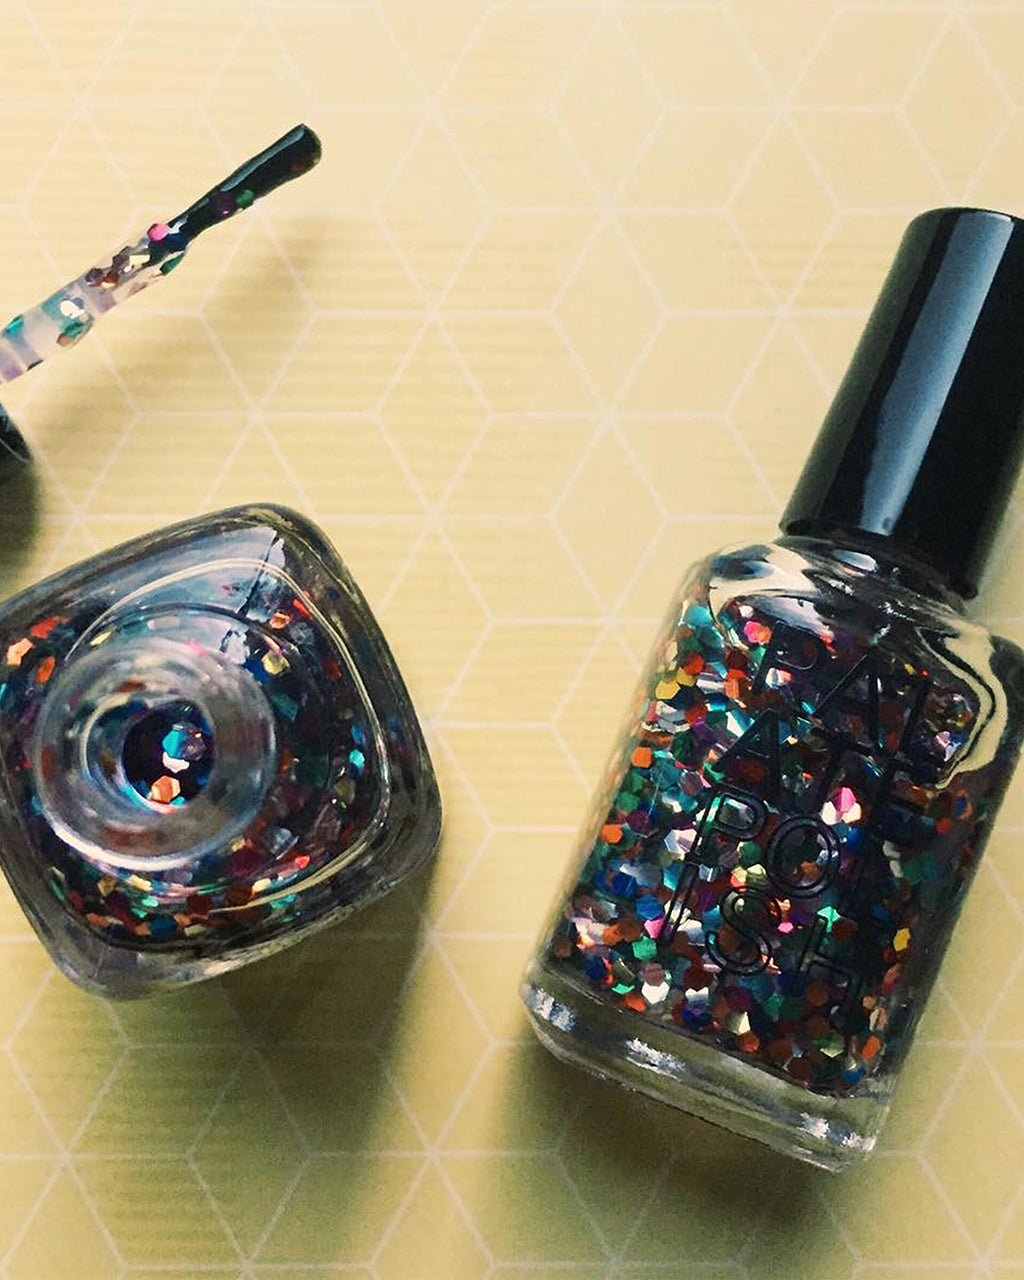 two bottles of gumball nail polish shown on a yellow background